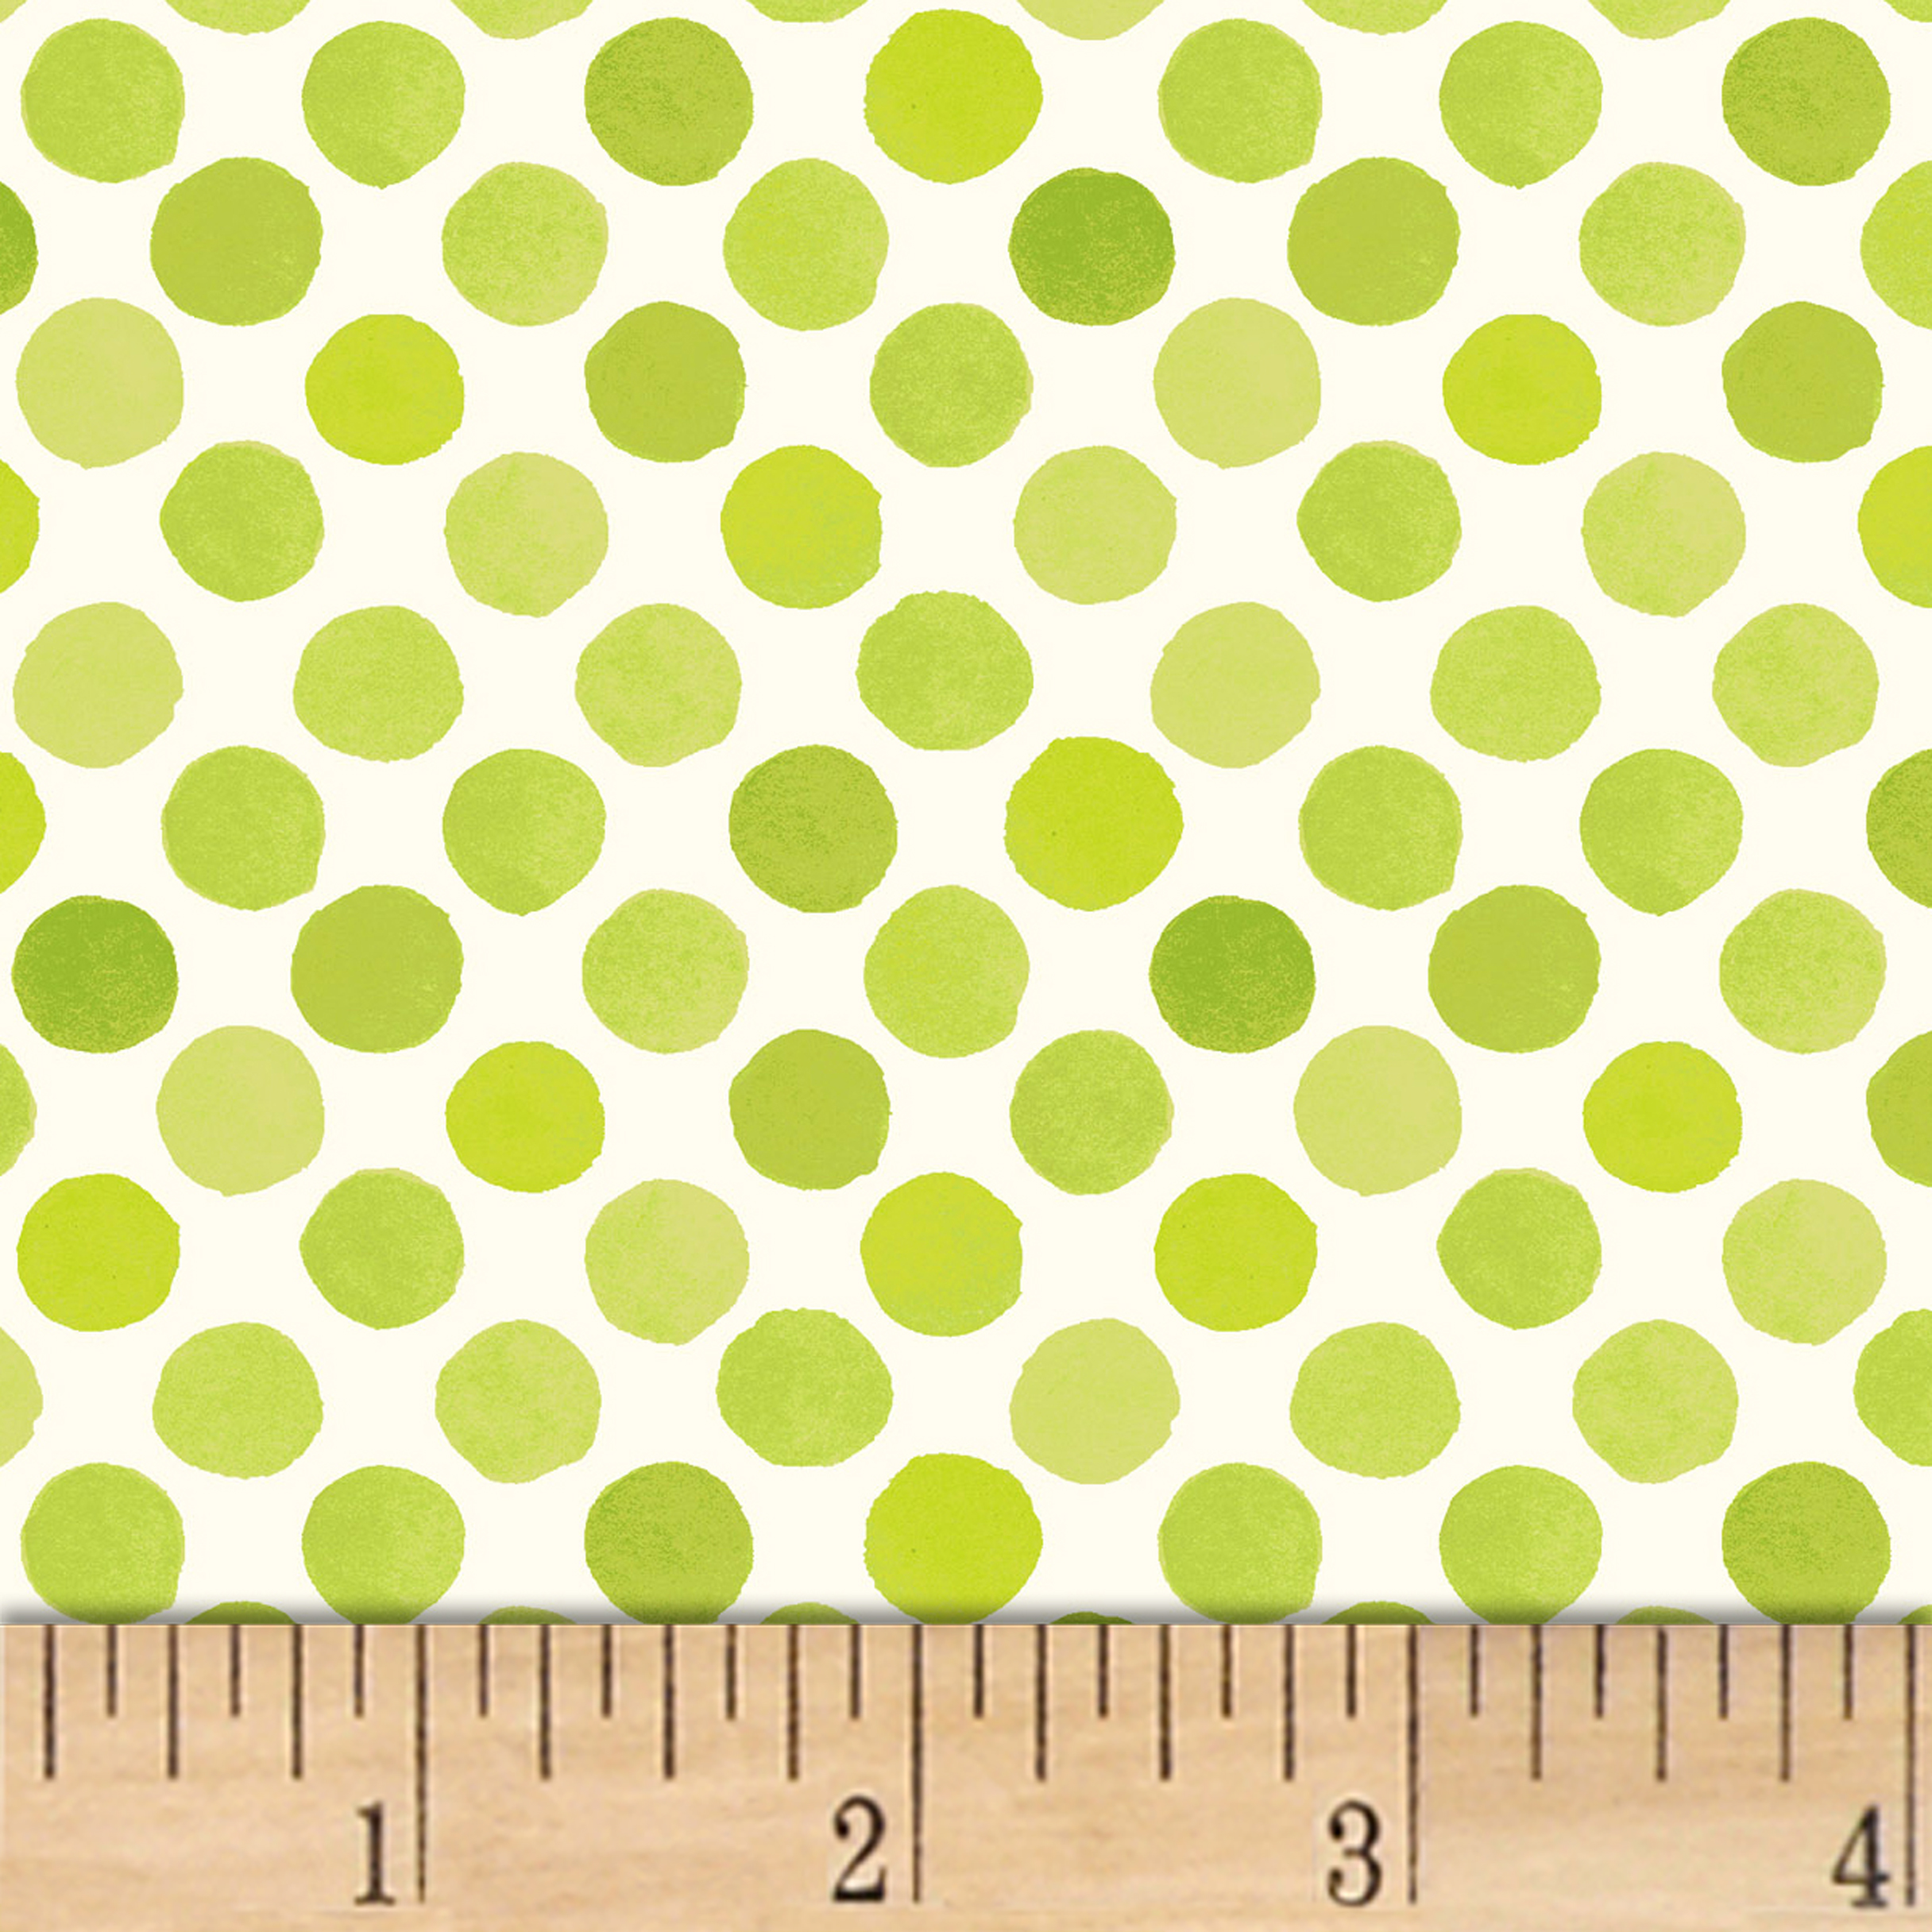 INOpets.com Anything for Pets Parents & Their Pets Lori's Art Garden Garden Dots Green Fabric